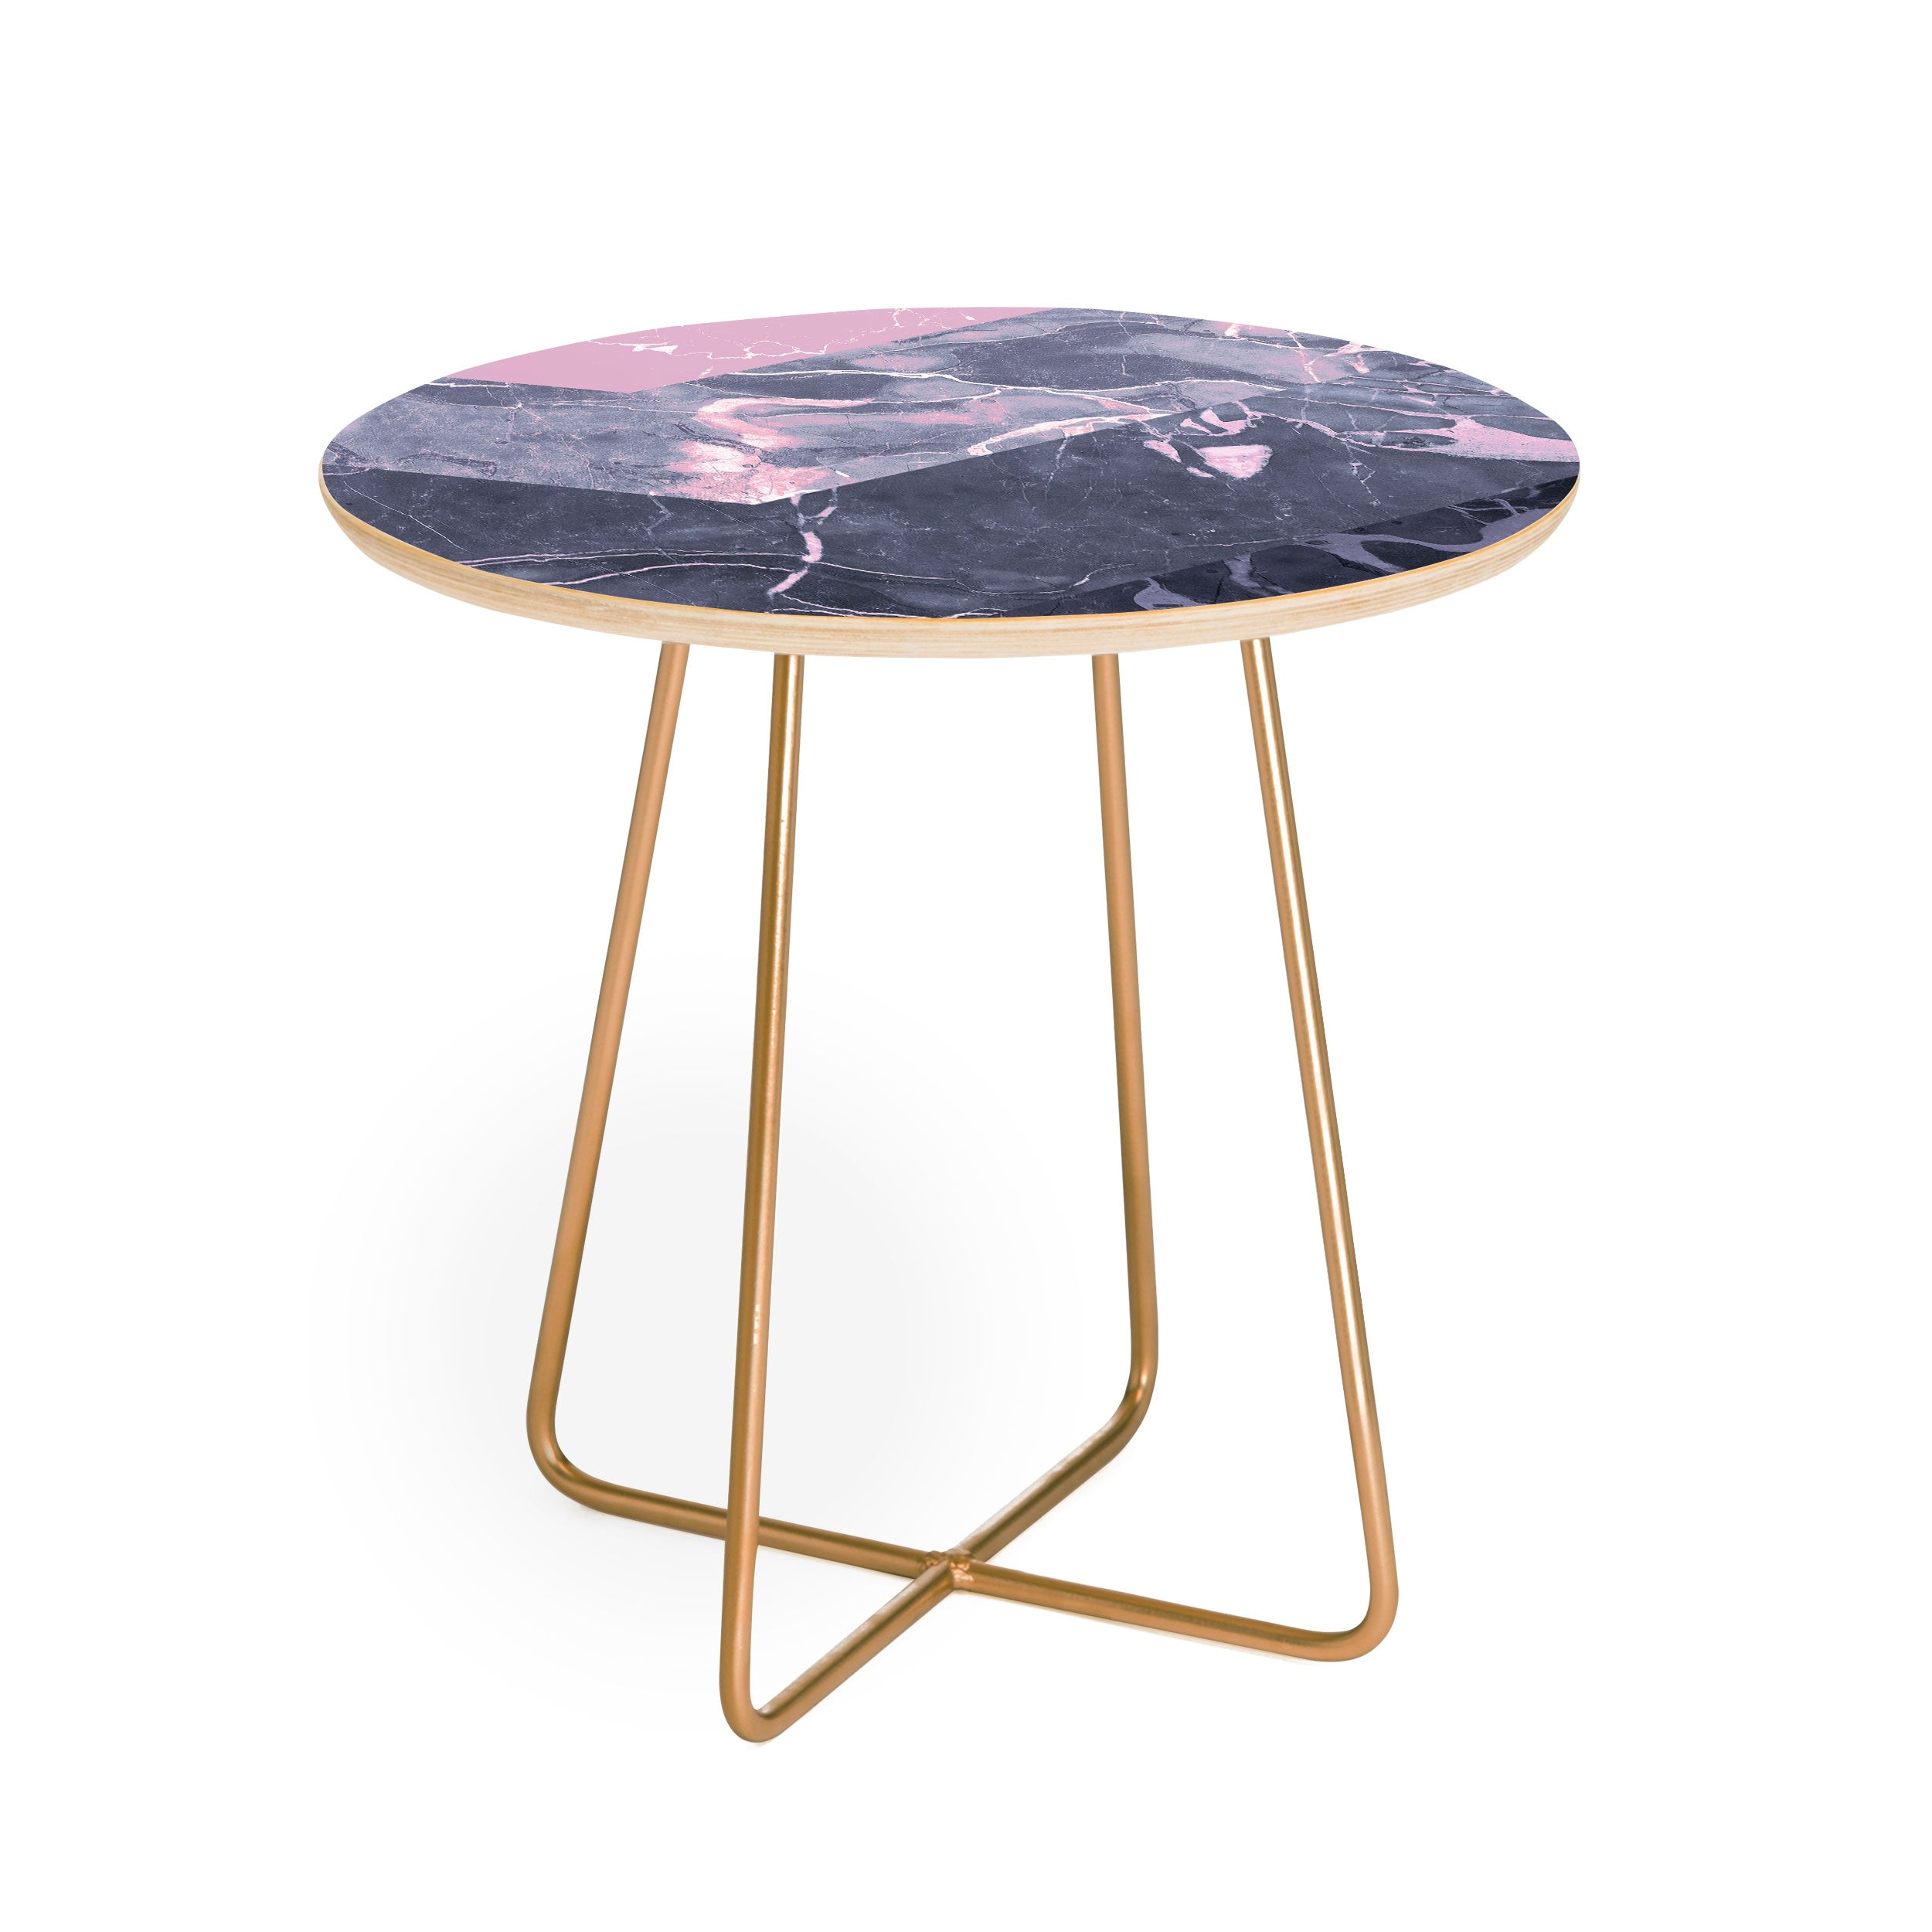 Emanuela Carratoni Chevron Marble Texture Round Side Table